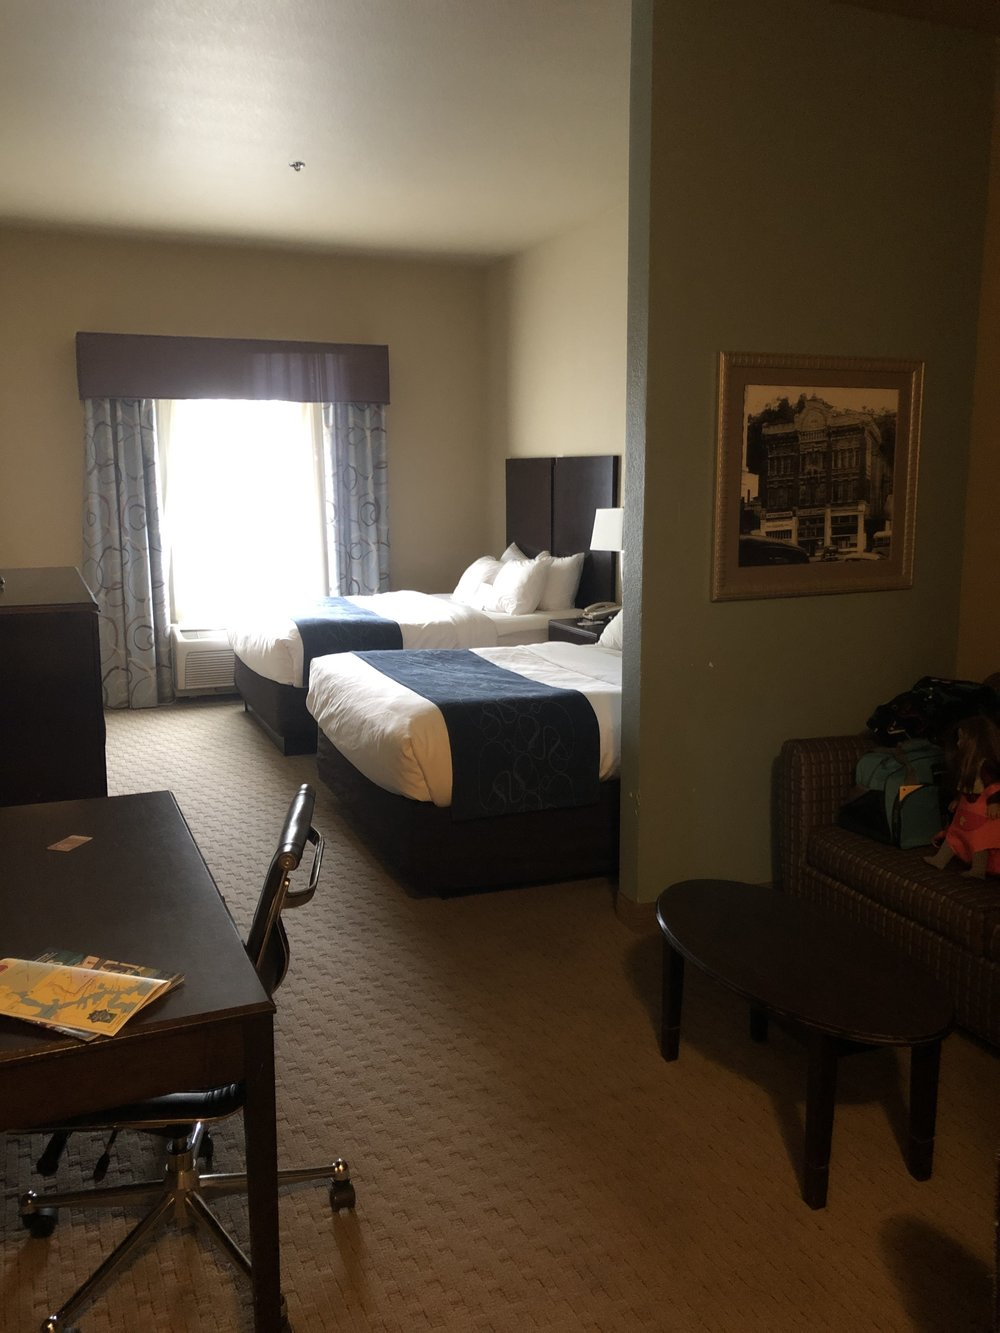 Comfort Suites, 320 Nash St, Hot Springs, Arkansas Hotels via Weekend Trips From Nashville